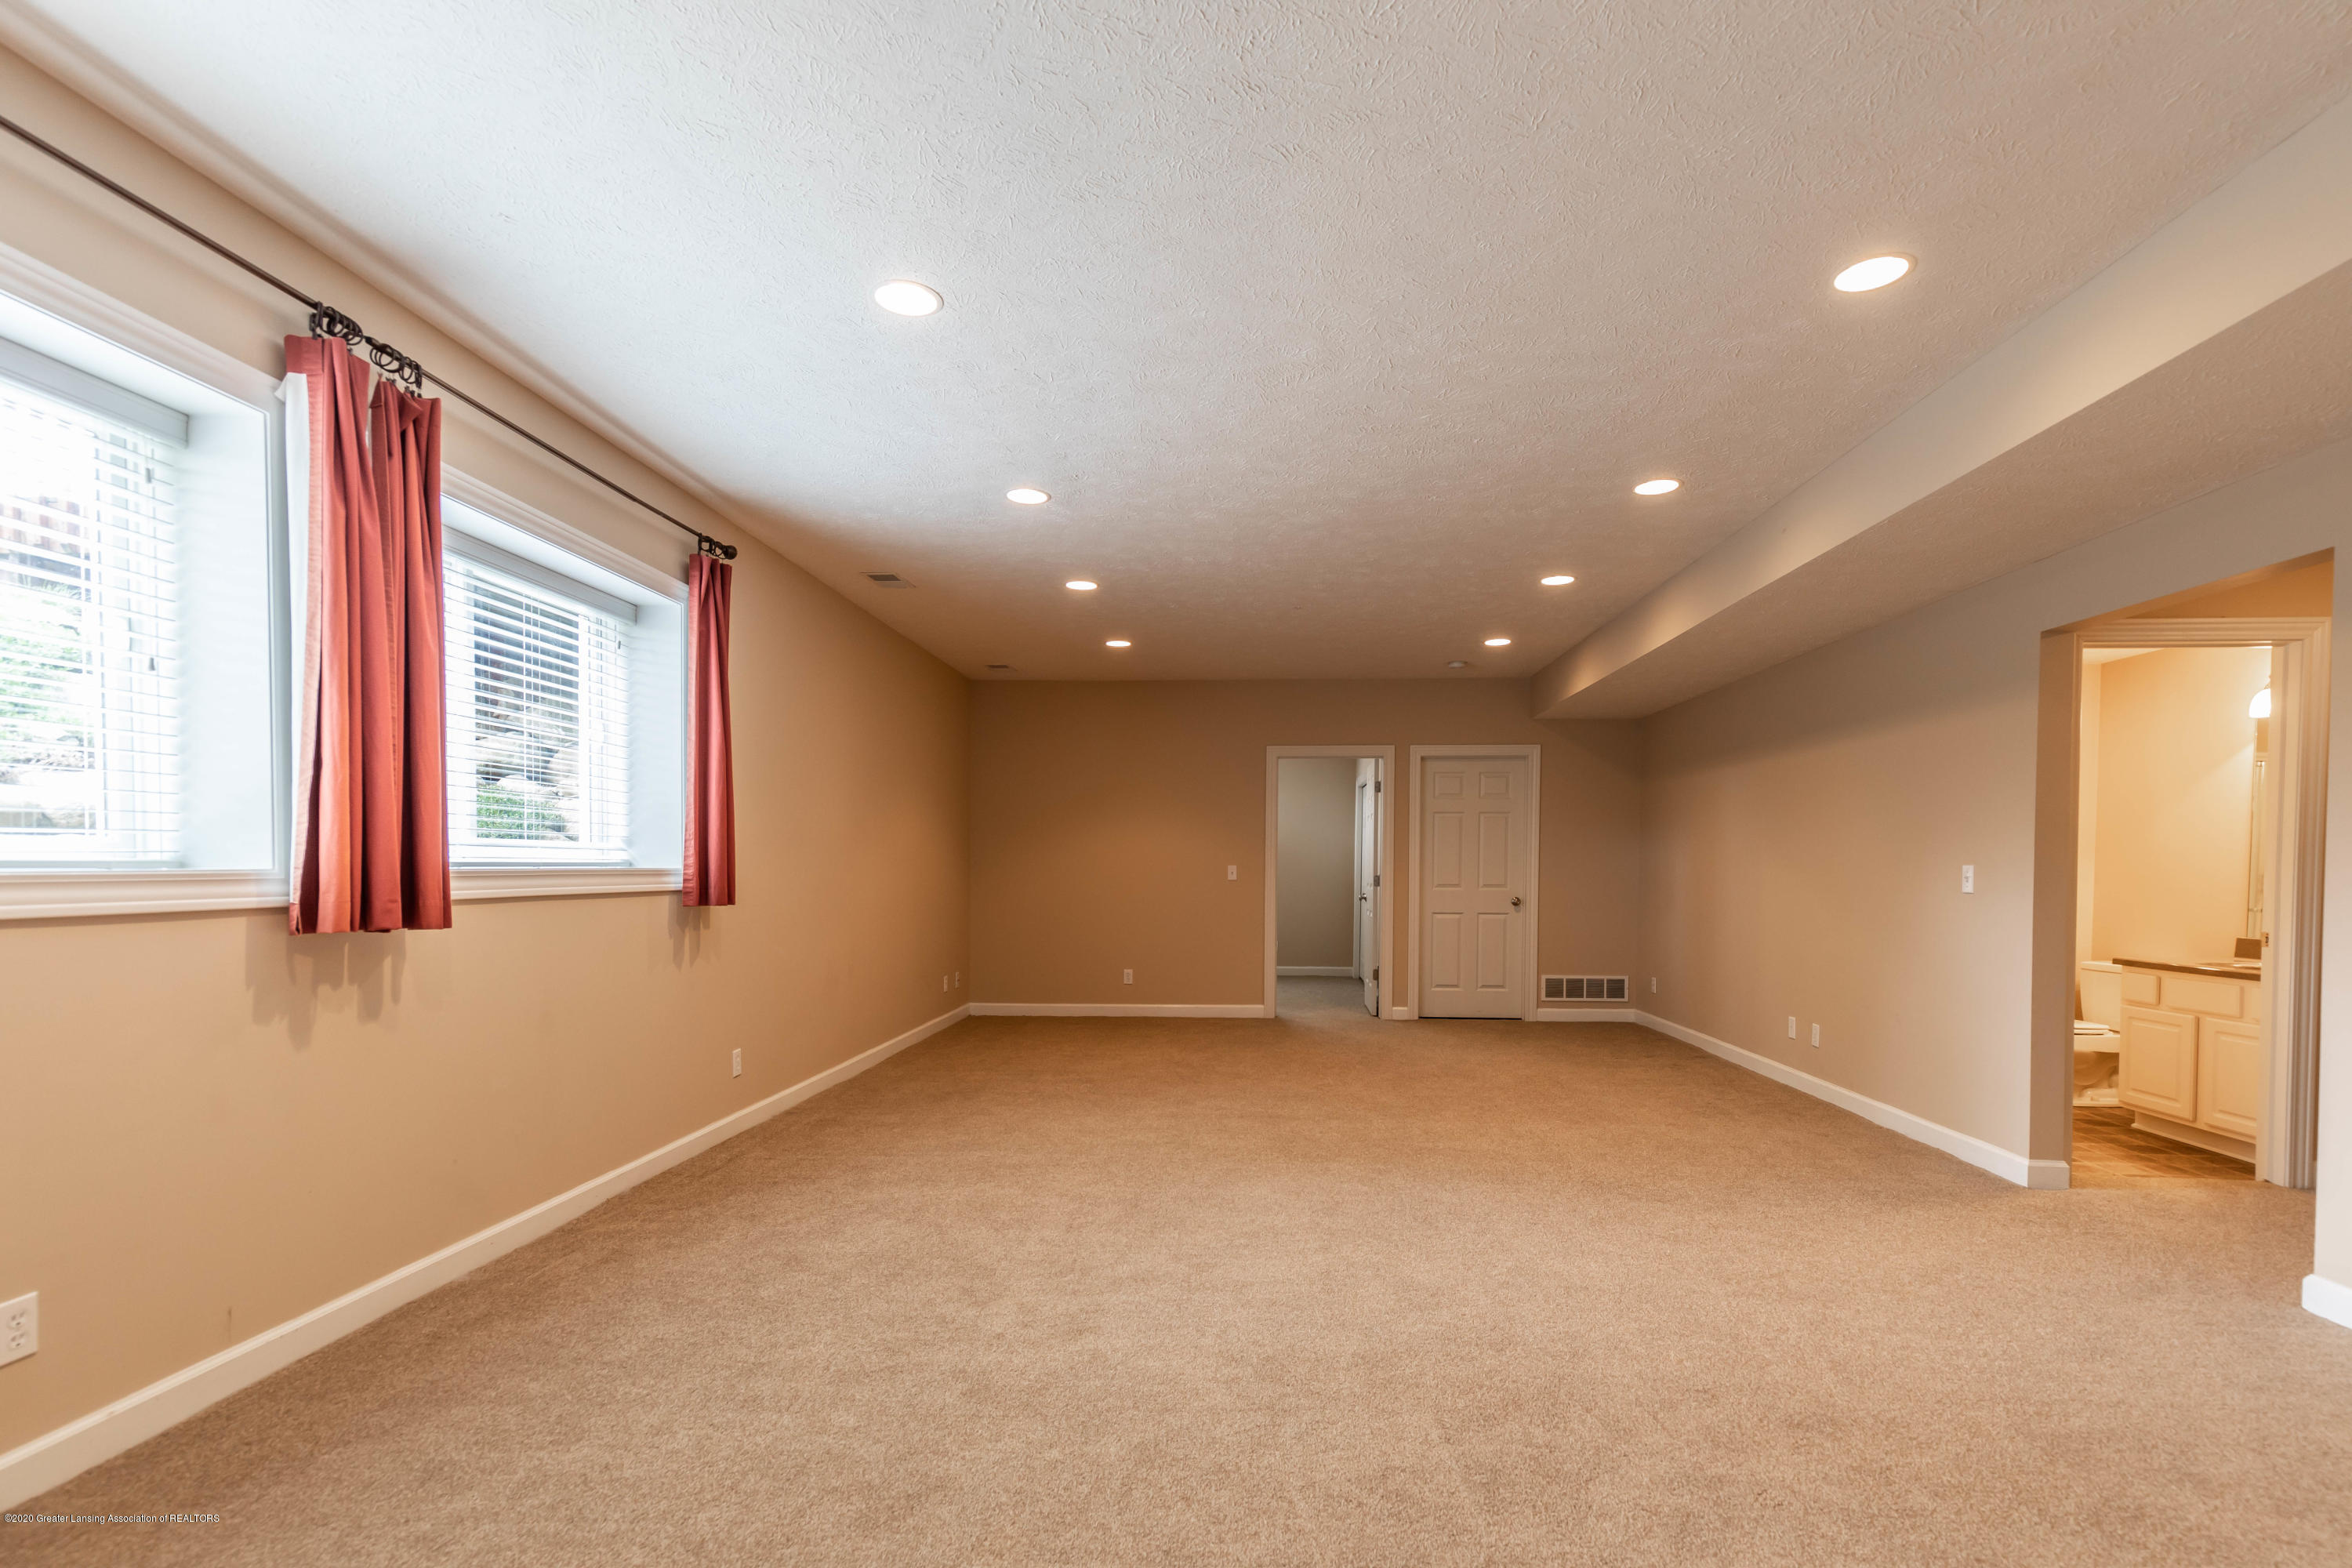 12810 Chartreuse Dr - chartreuseds (1 of 1) - 37